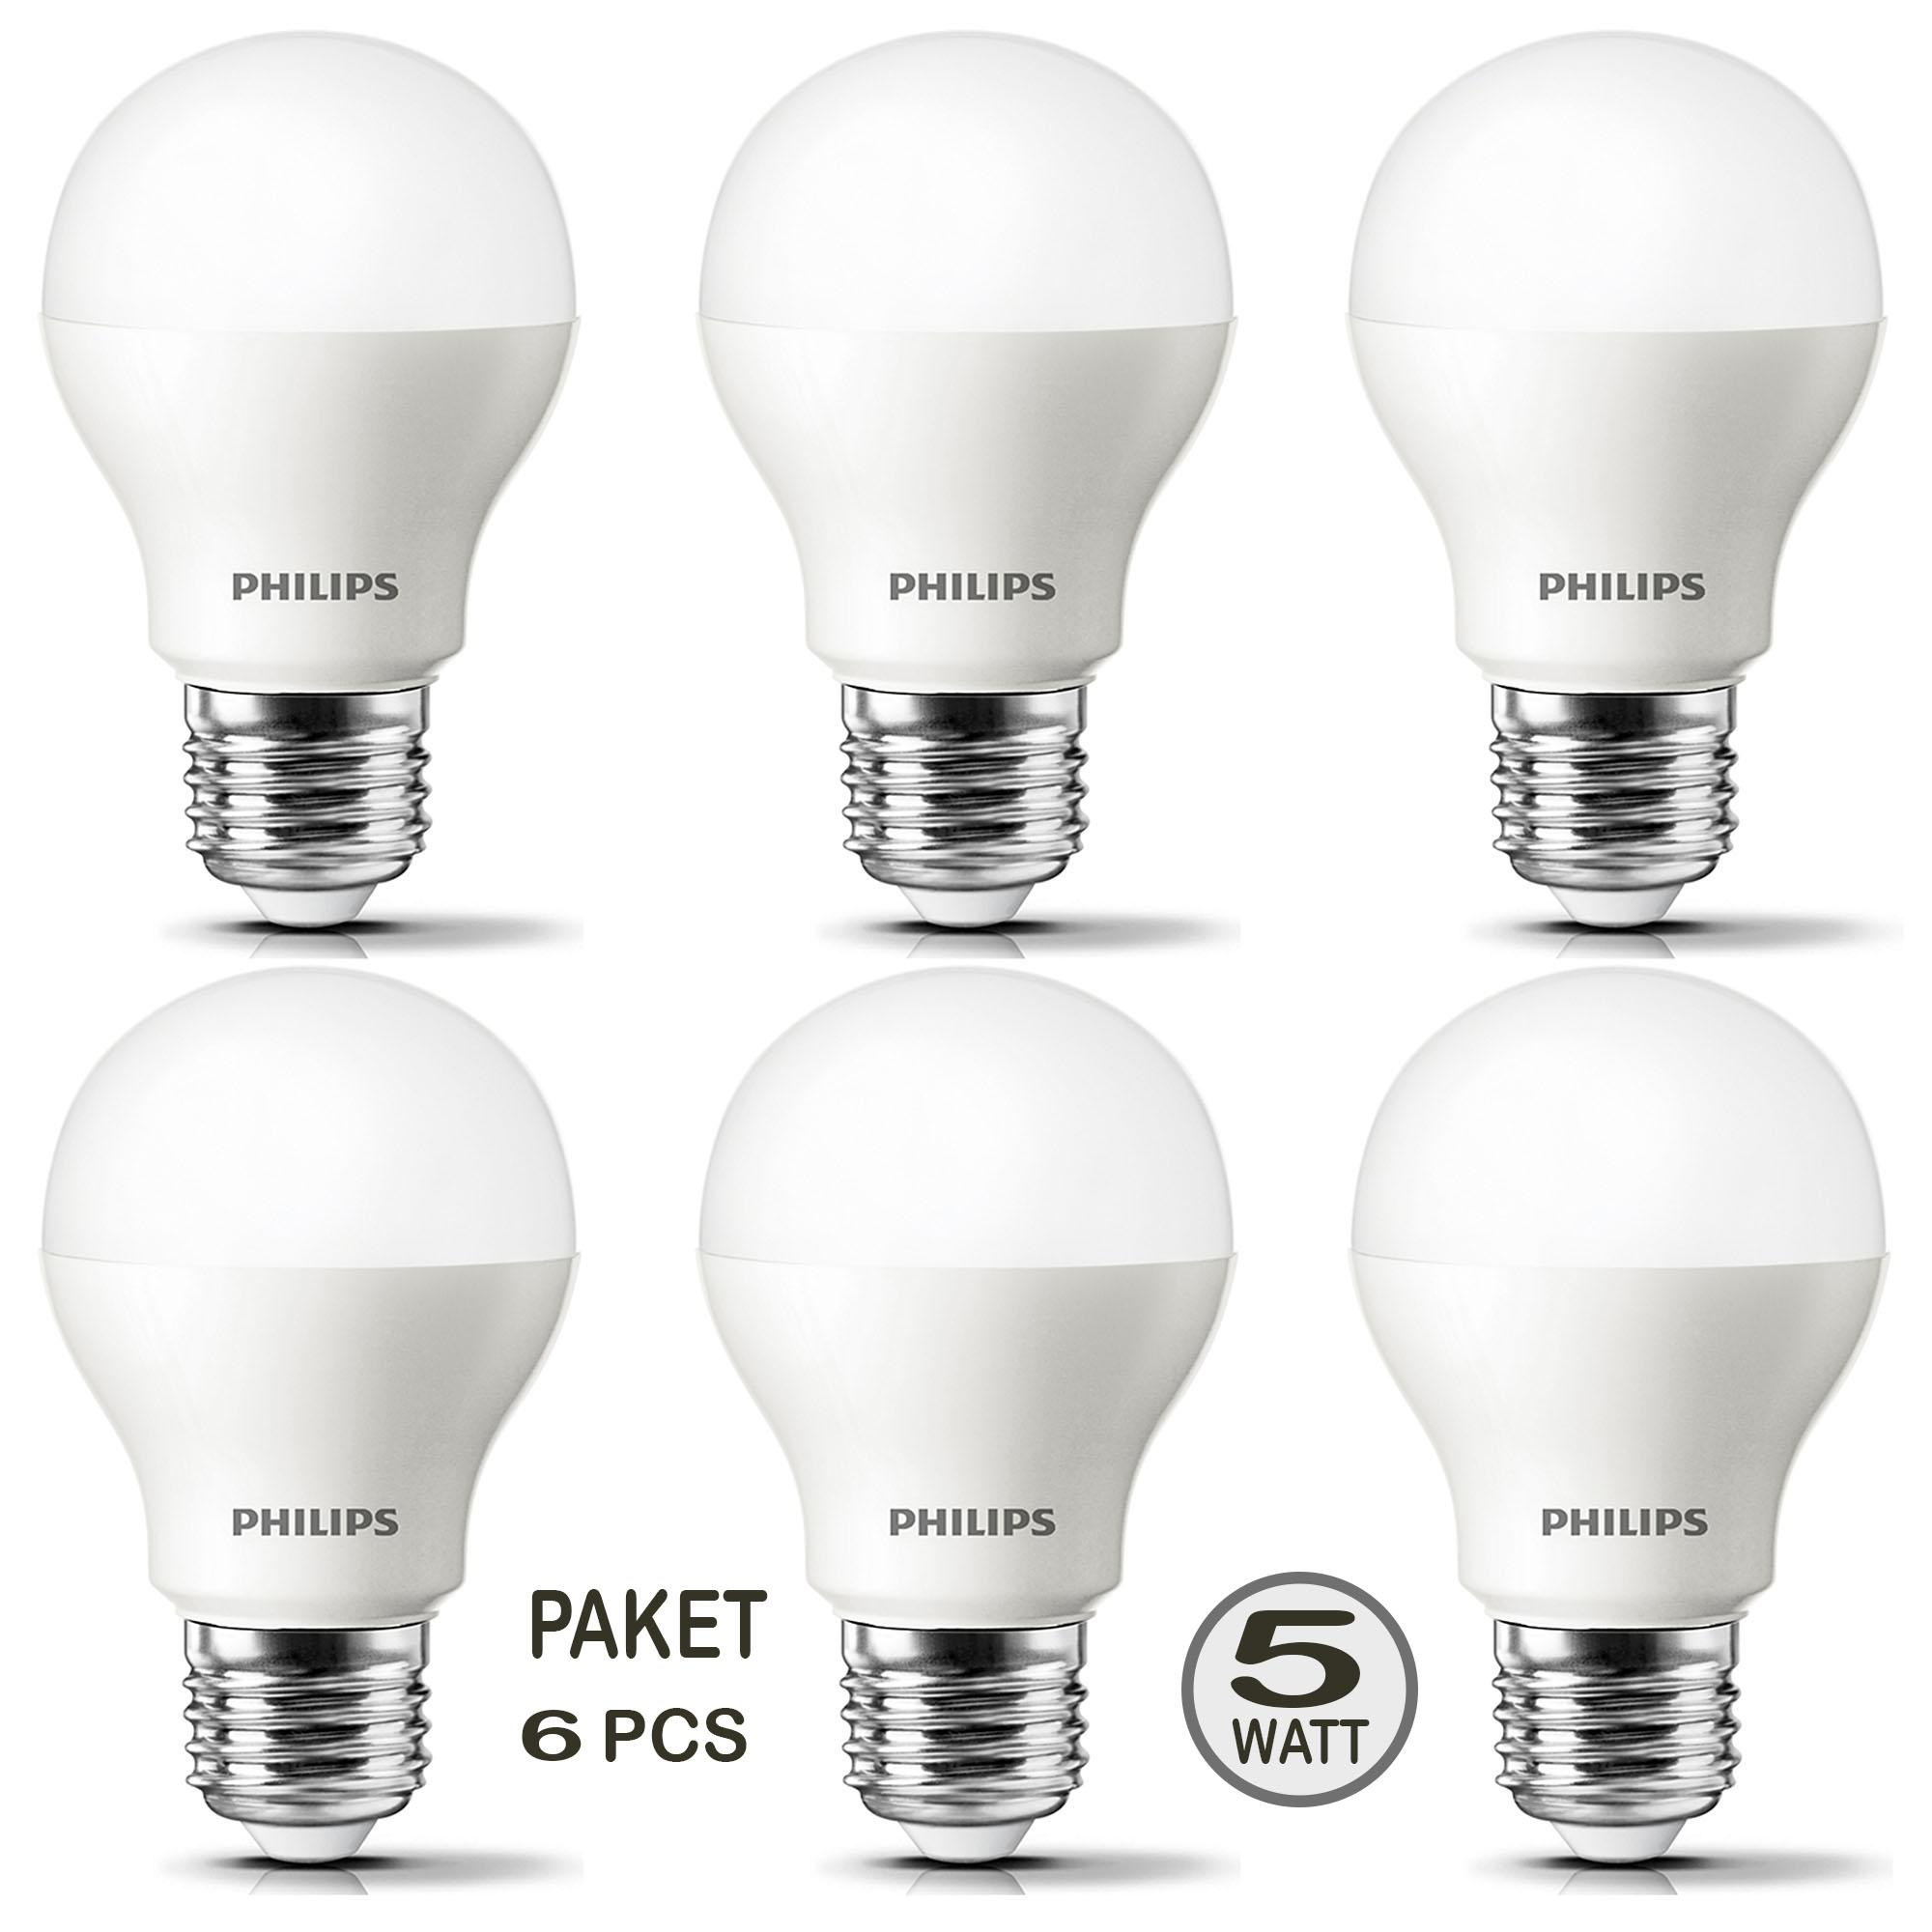 PHILIPS Lampu Led Bulb ESSENTIAL 5W 5Wat 5 W 5 Watt (PAKET 6 PCS)